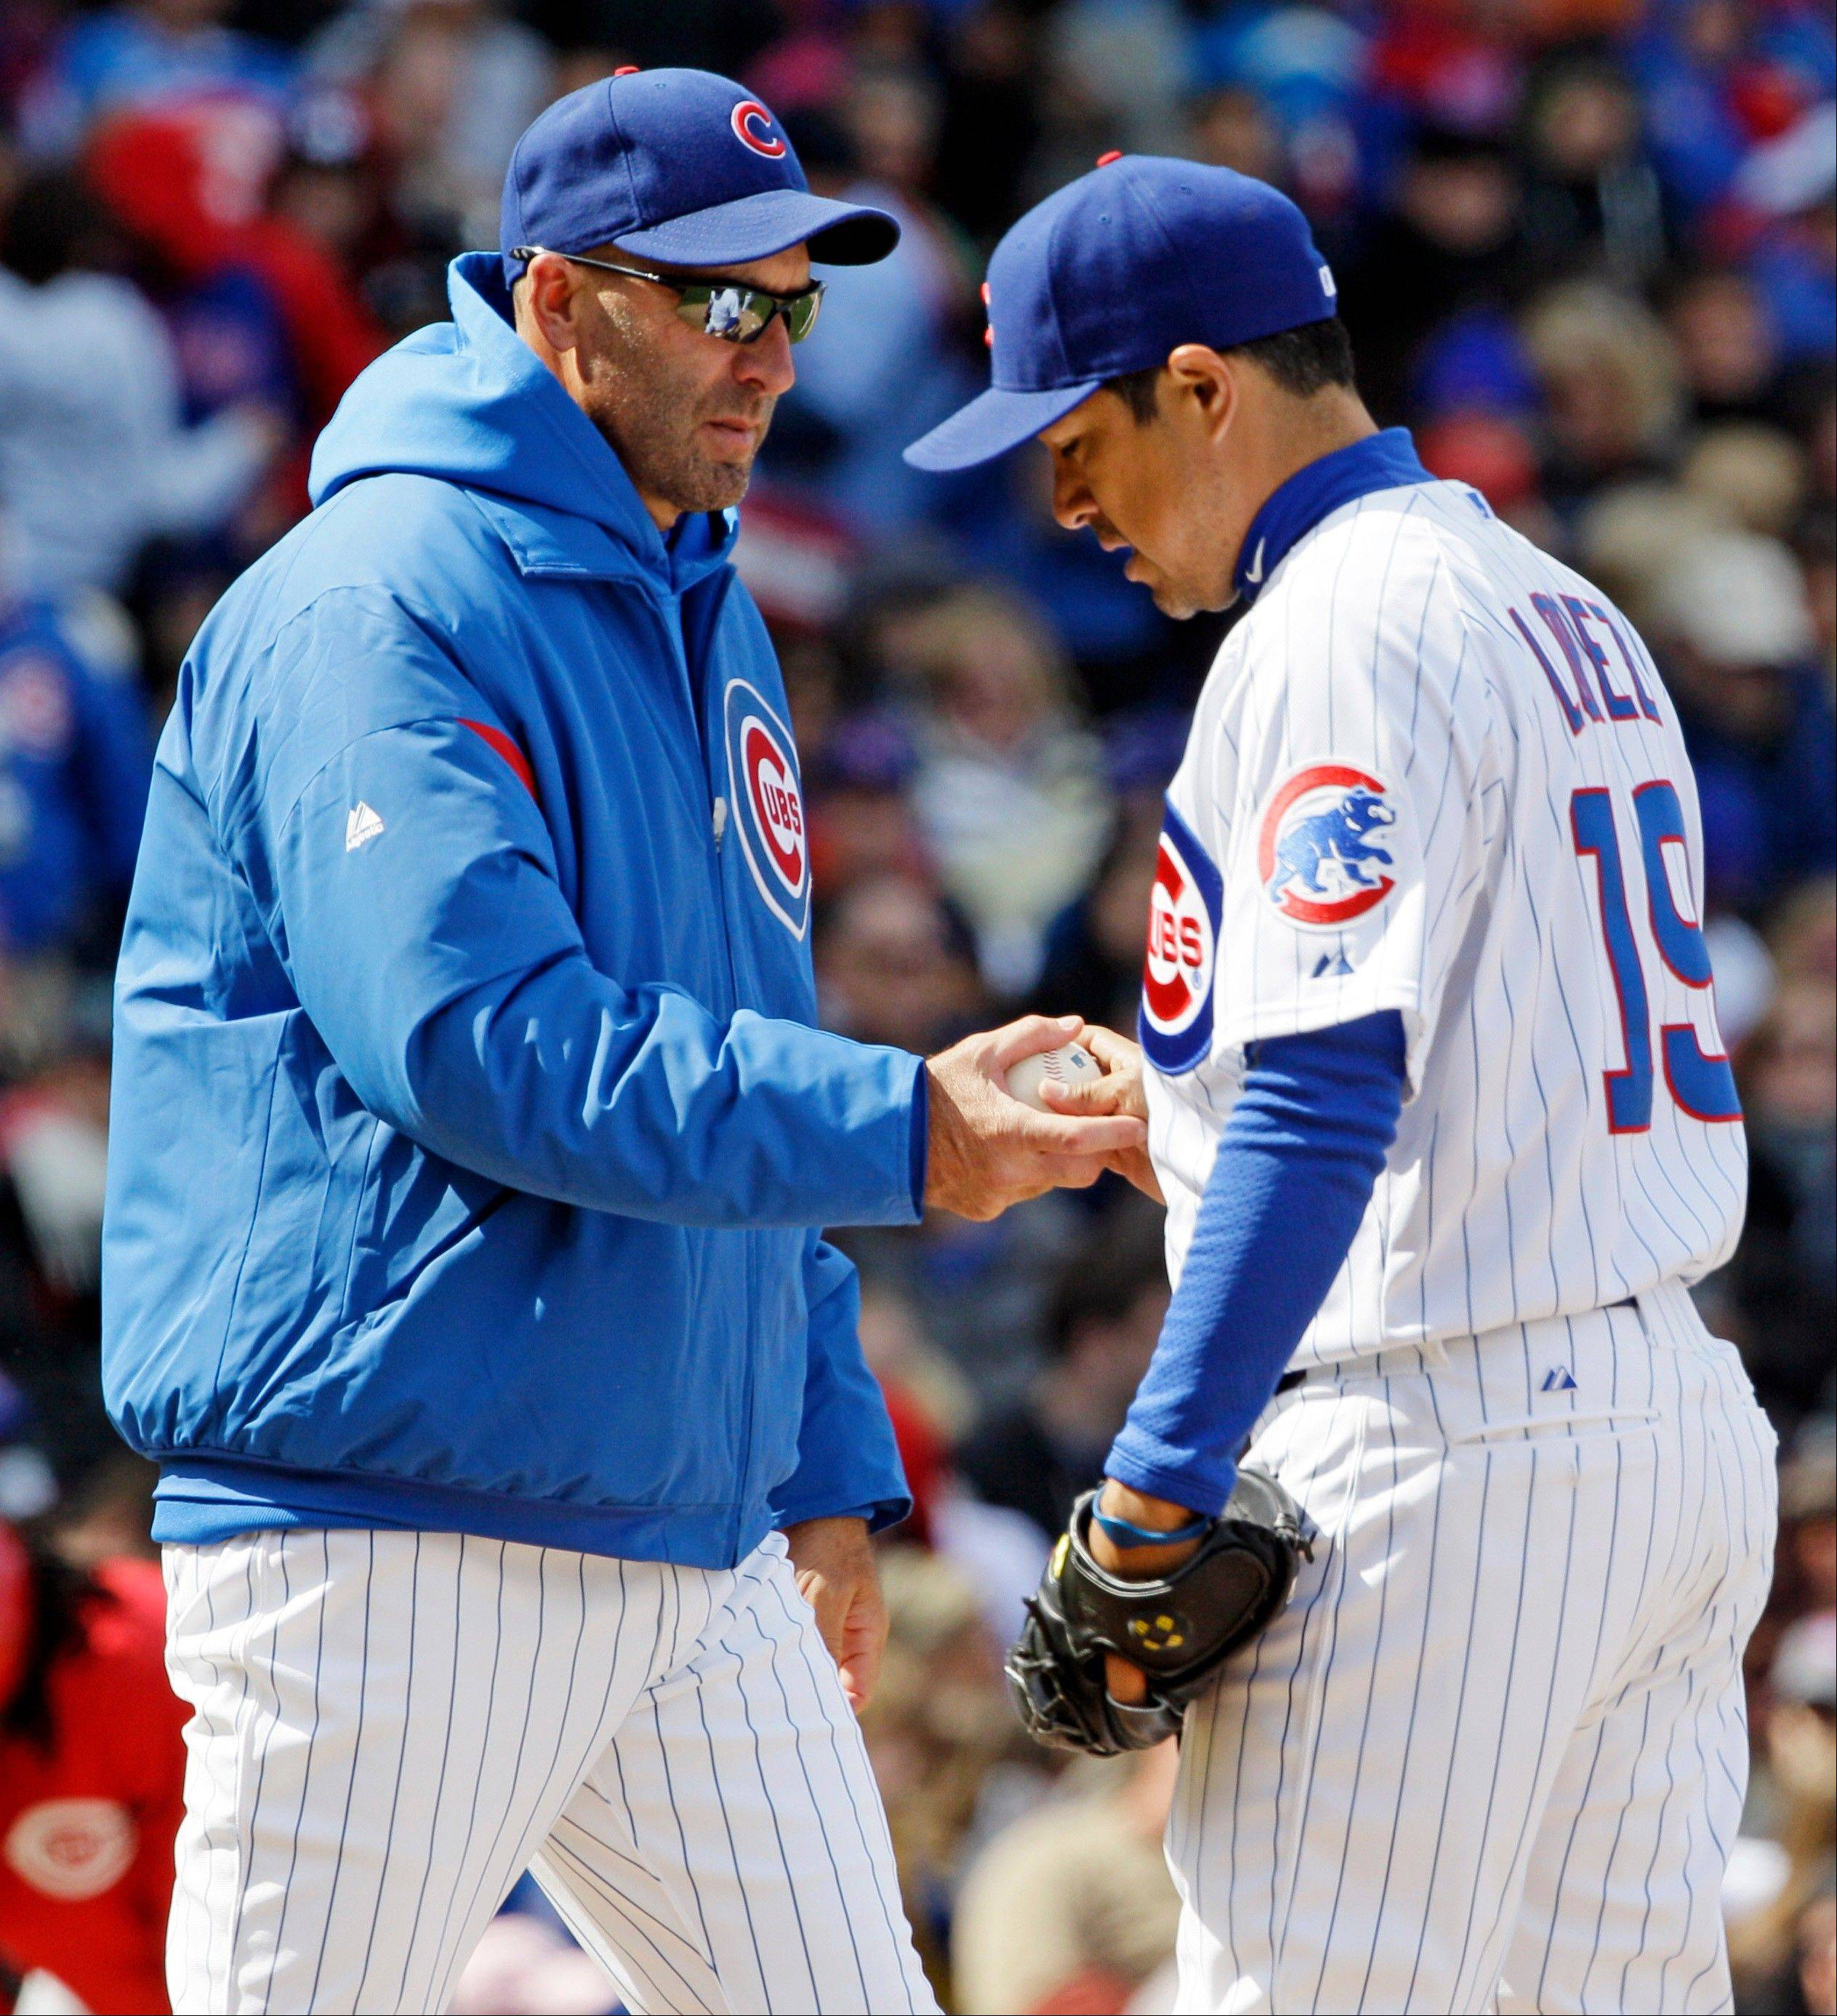 Chicago Cubs manager Dale Sveum, left, takes the ball from relief pitcher Rodrigo Lopez during the sixth inning of a baseball game against the Cincinnati Reds in Chicago, Sunday, April 22, 2012.